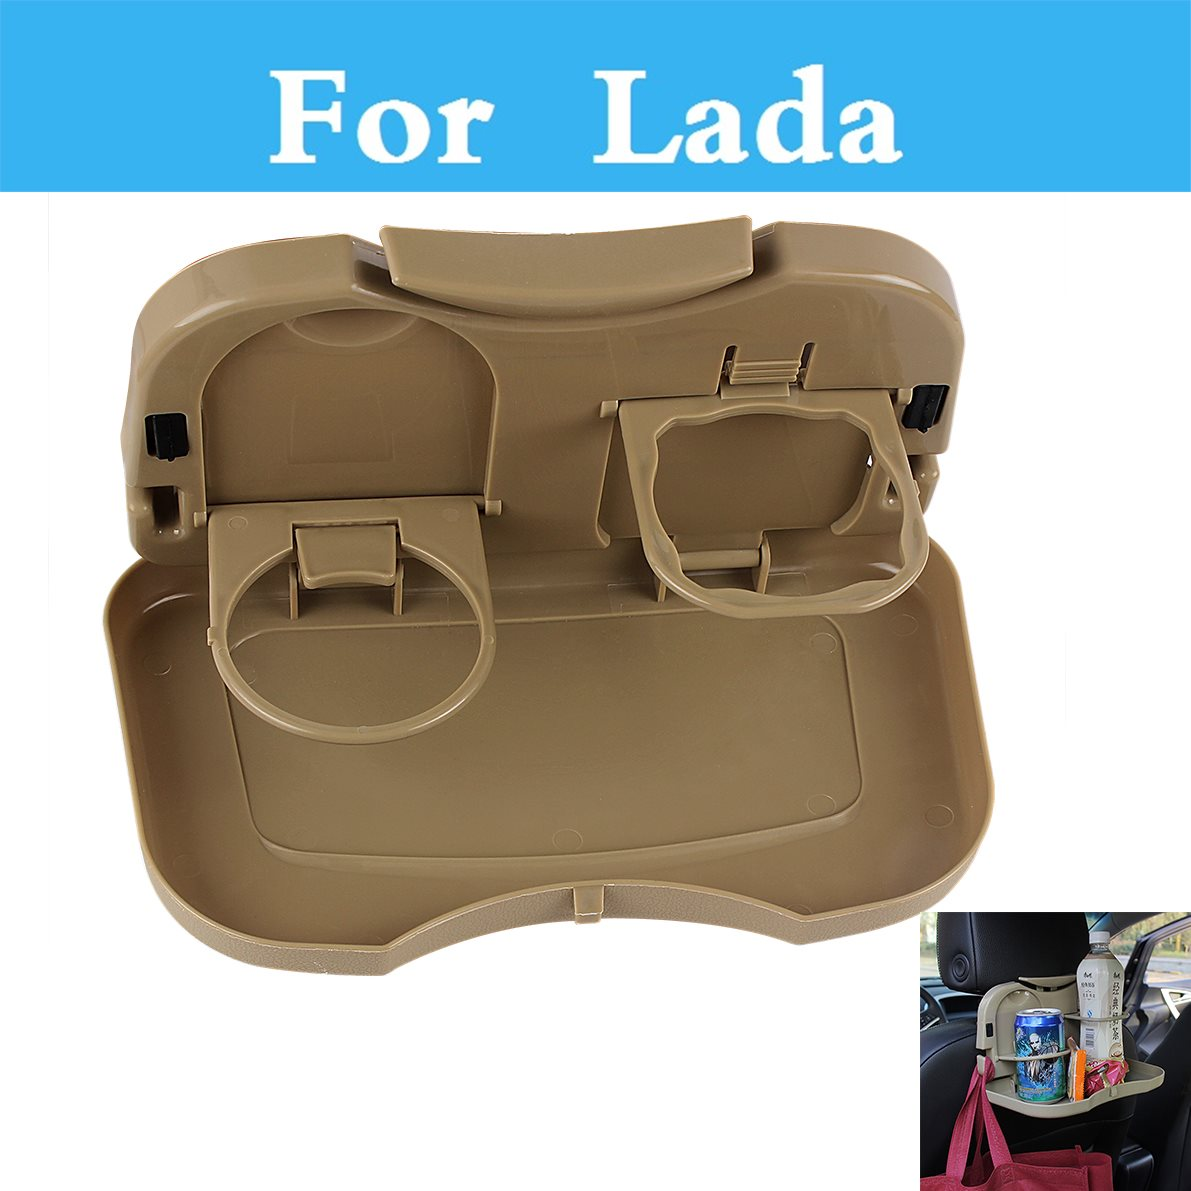 New Double Car Cup Holder Drinks Holders Car Accessories For Lada Priora Sens Vesta Vida Chance